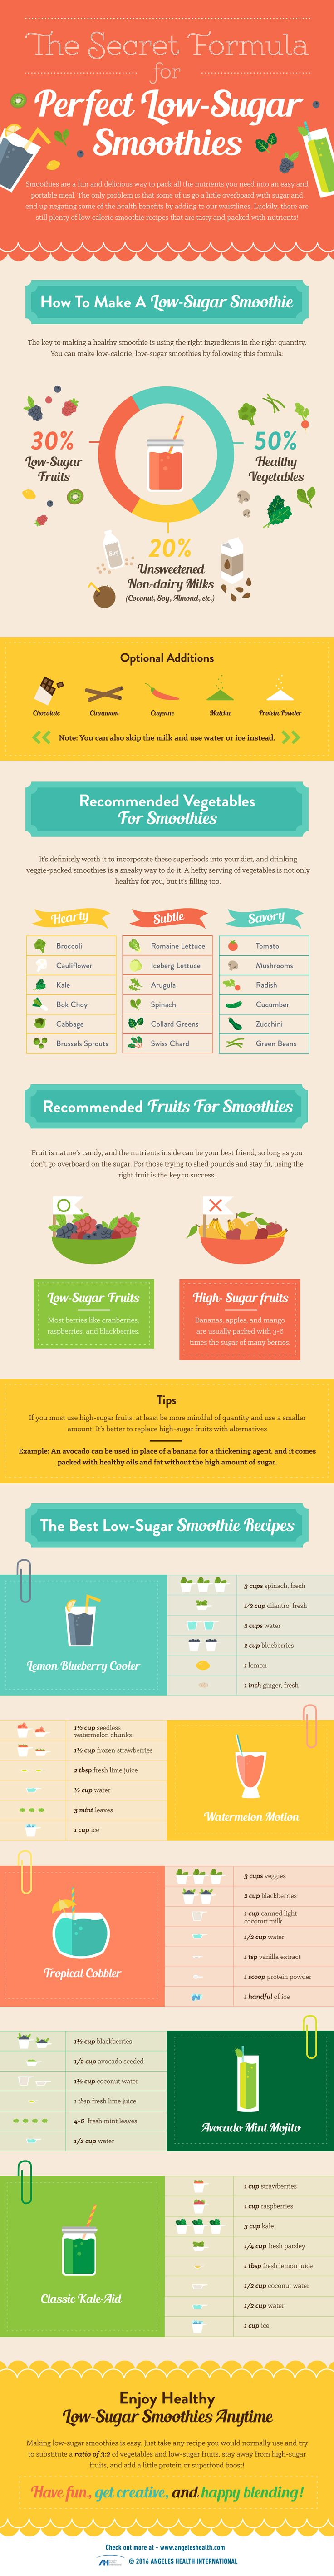 the-secret-formula-for-low-sugar-smoothies